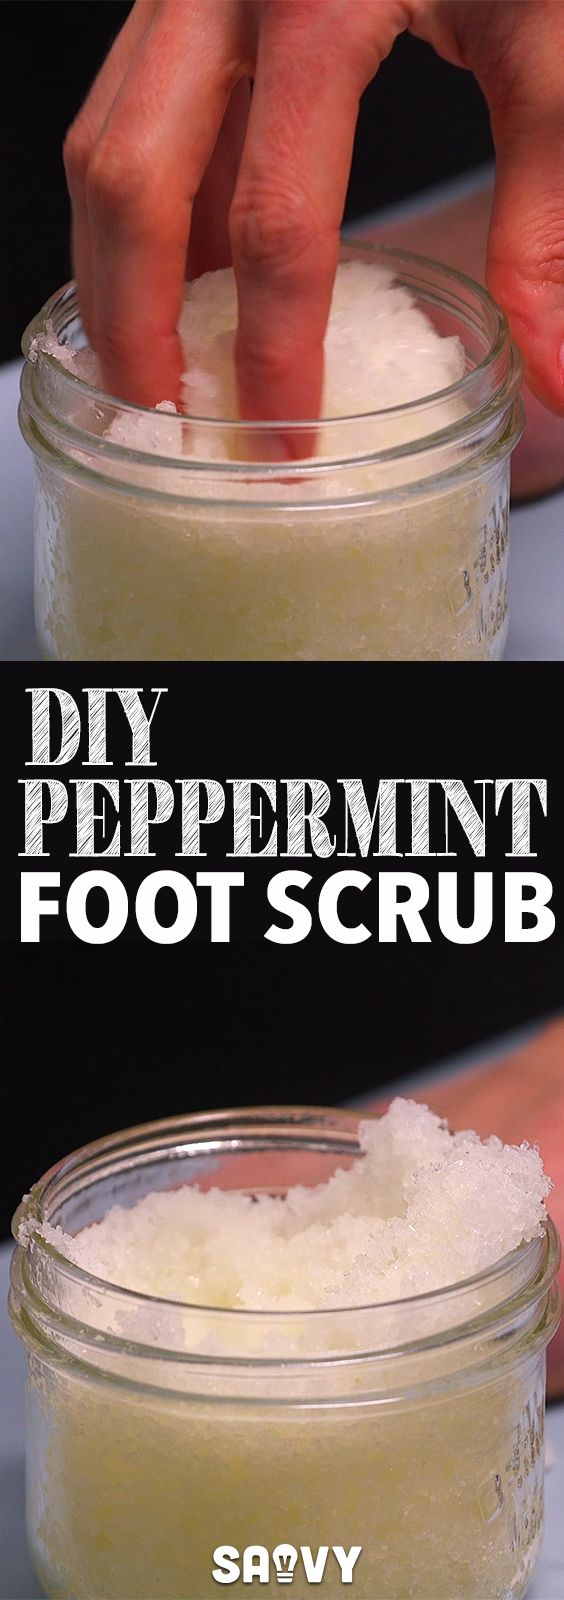 DIY Peppermint Foot Scrub